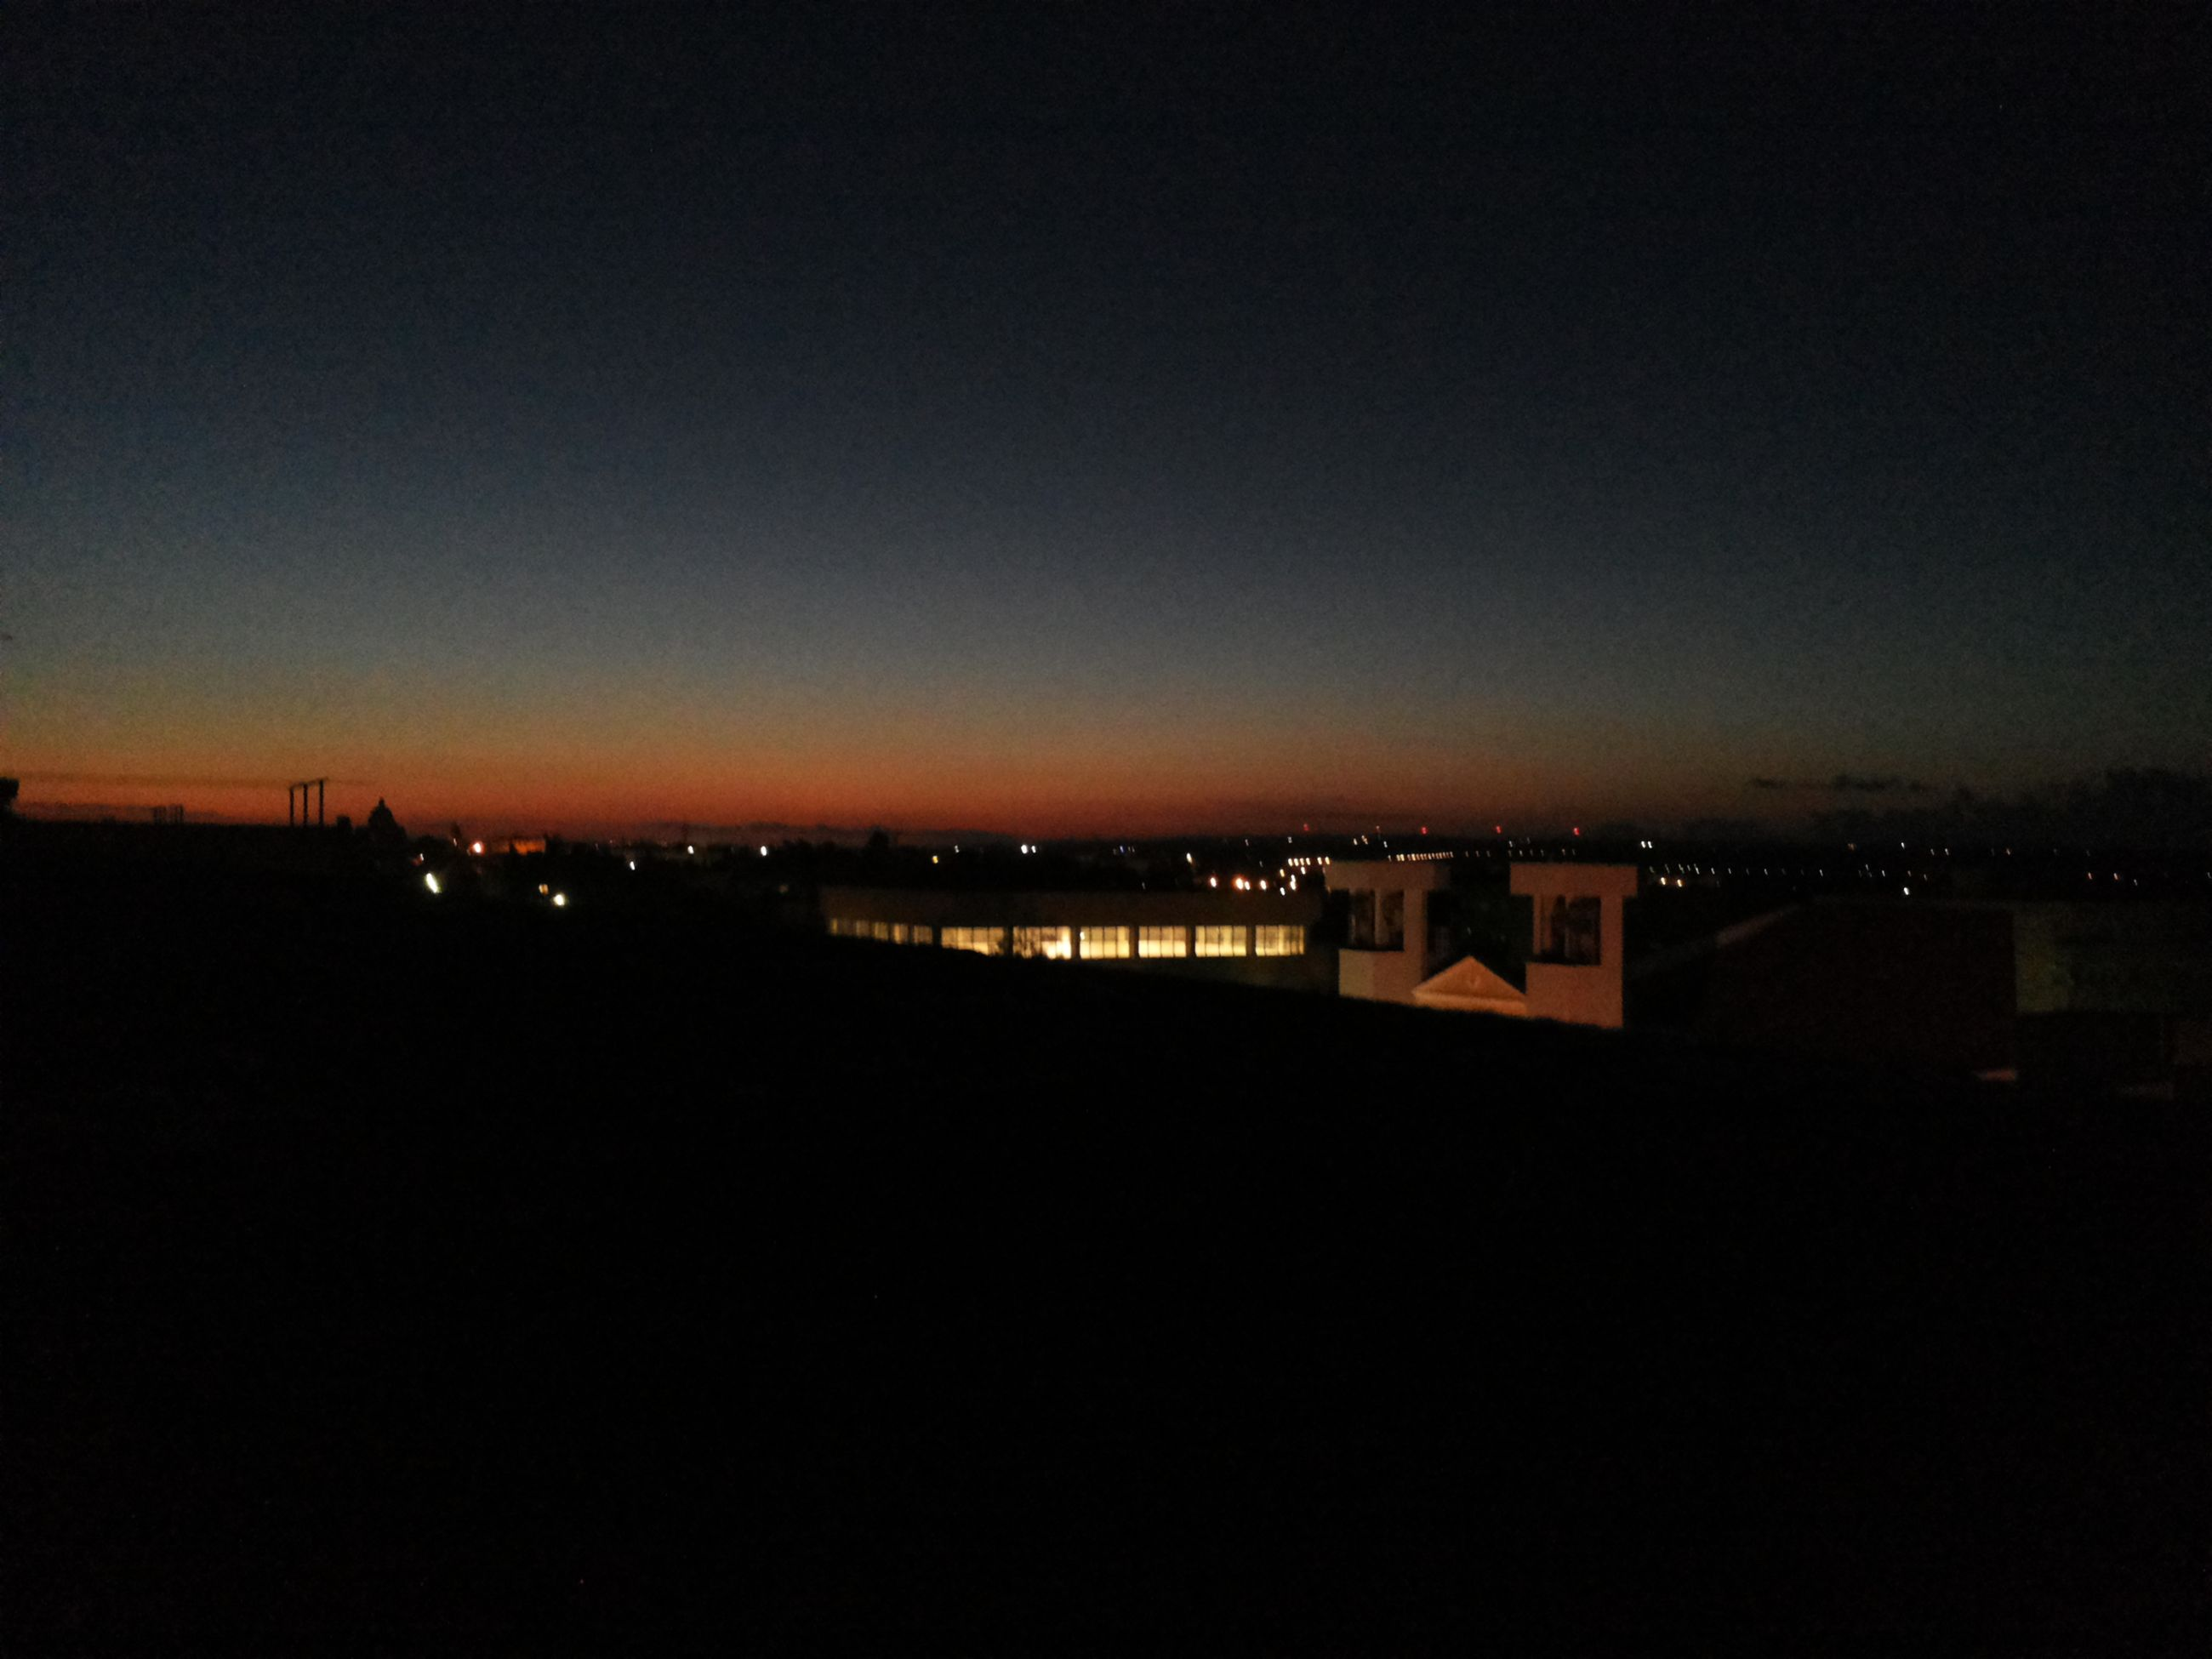 copy space, building exterior, illuminated, architecture, built structure, city, cityscape, night, clear sky, sunset, dark, silhouette, dusk, residential structure, residential building, residential district, sky, orange color, outdoors, no people